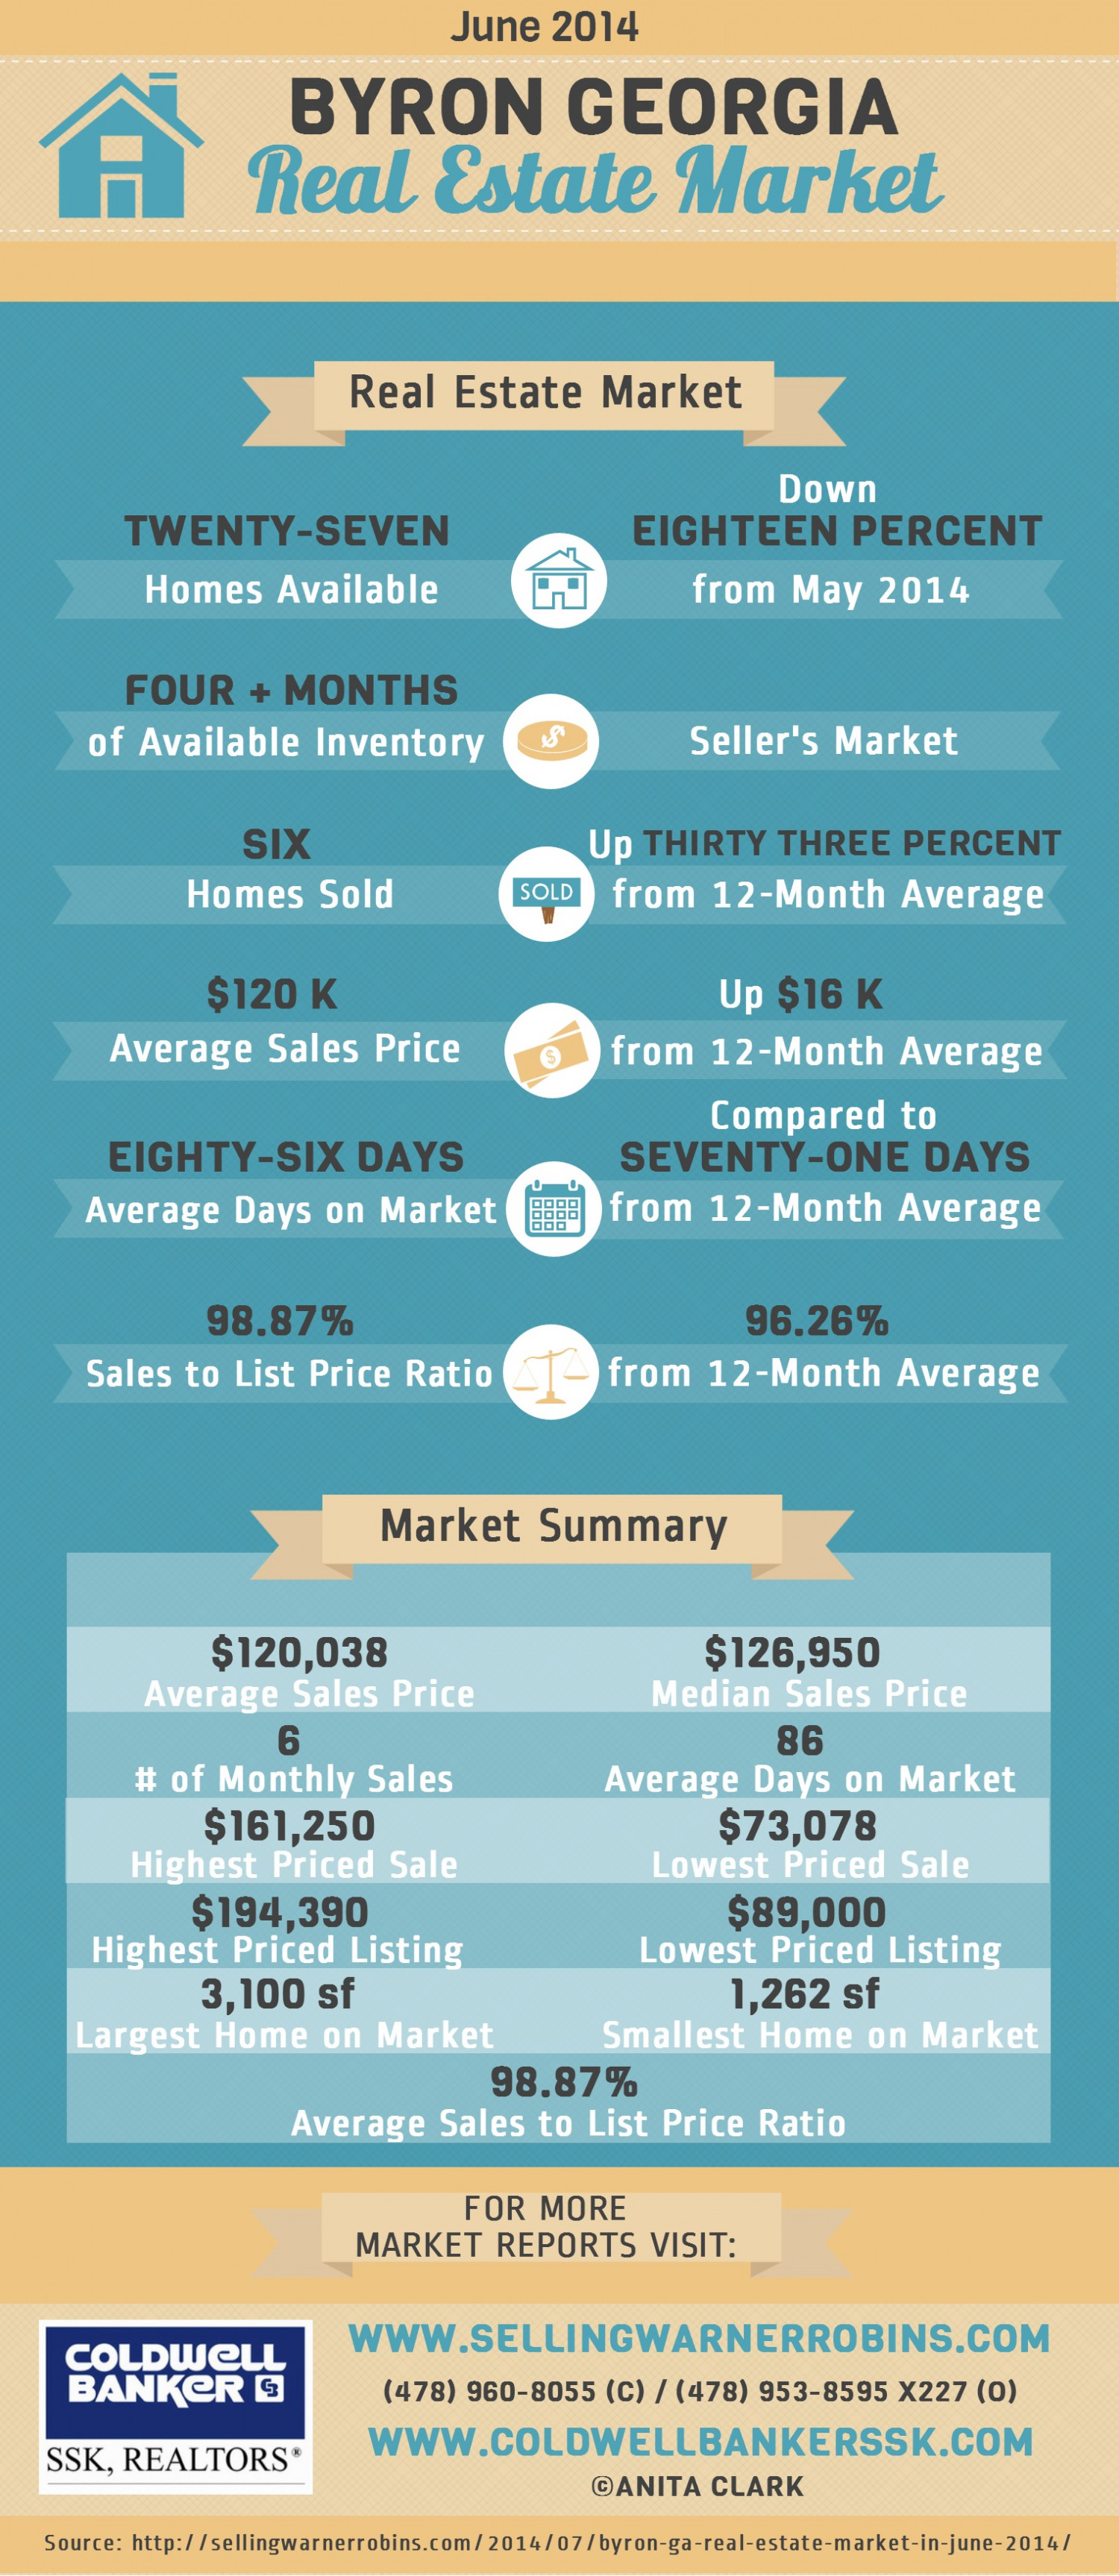 Byron GA Real Estate Market in June 2014 Infographic